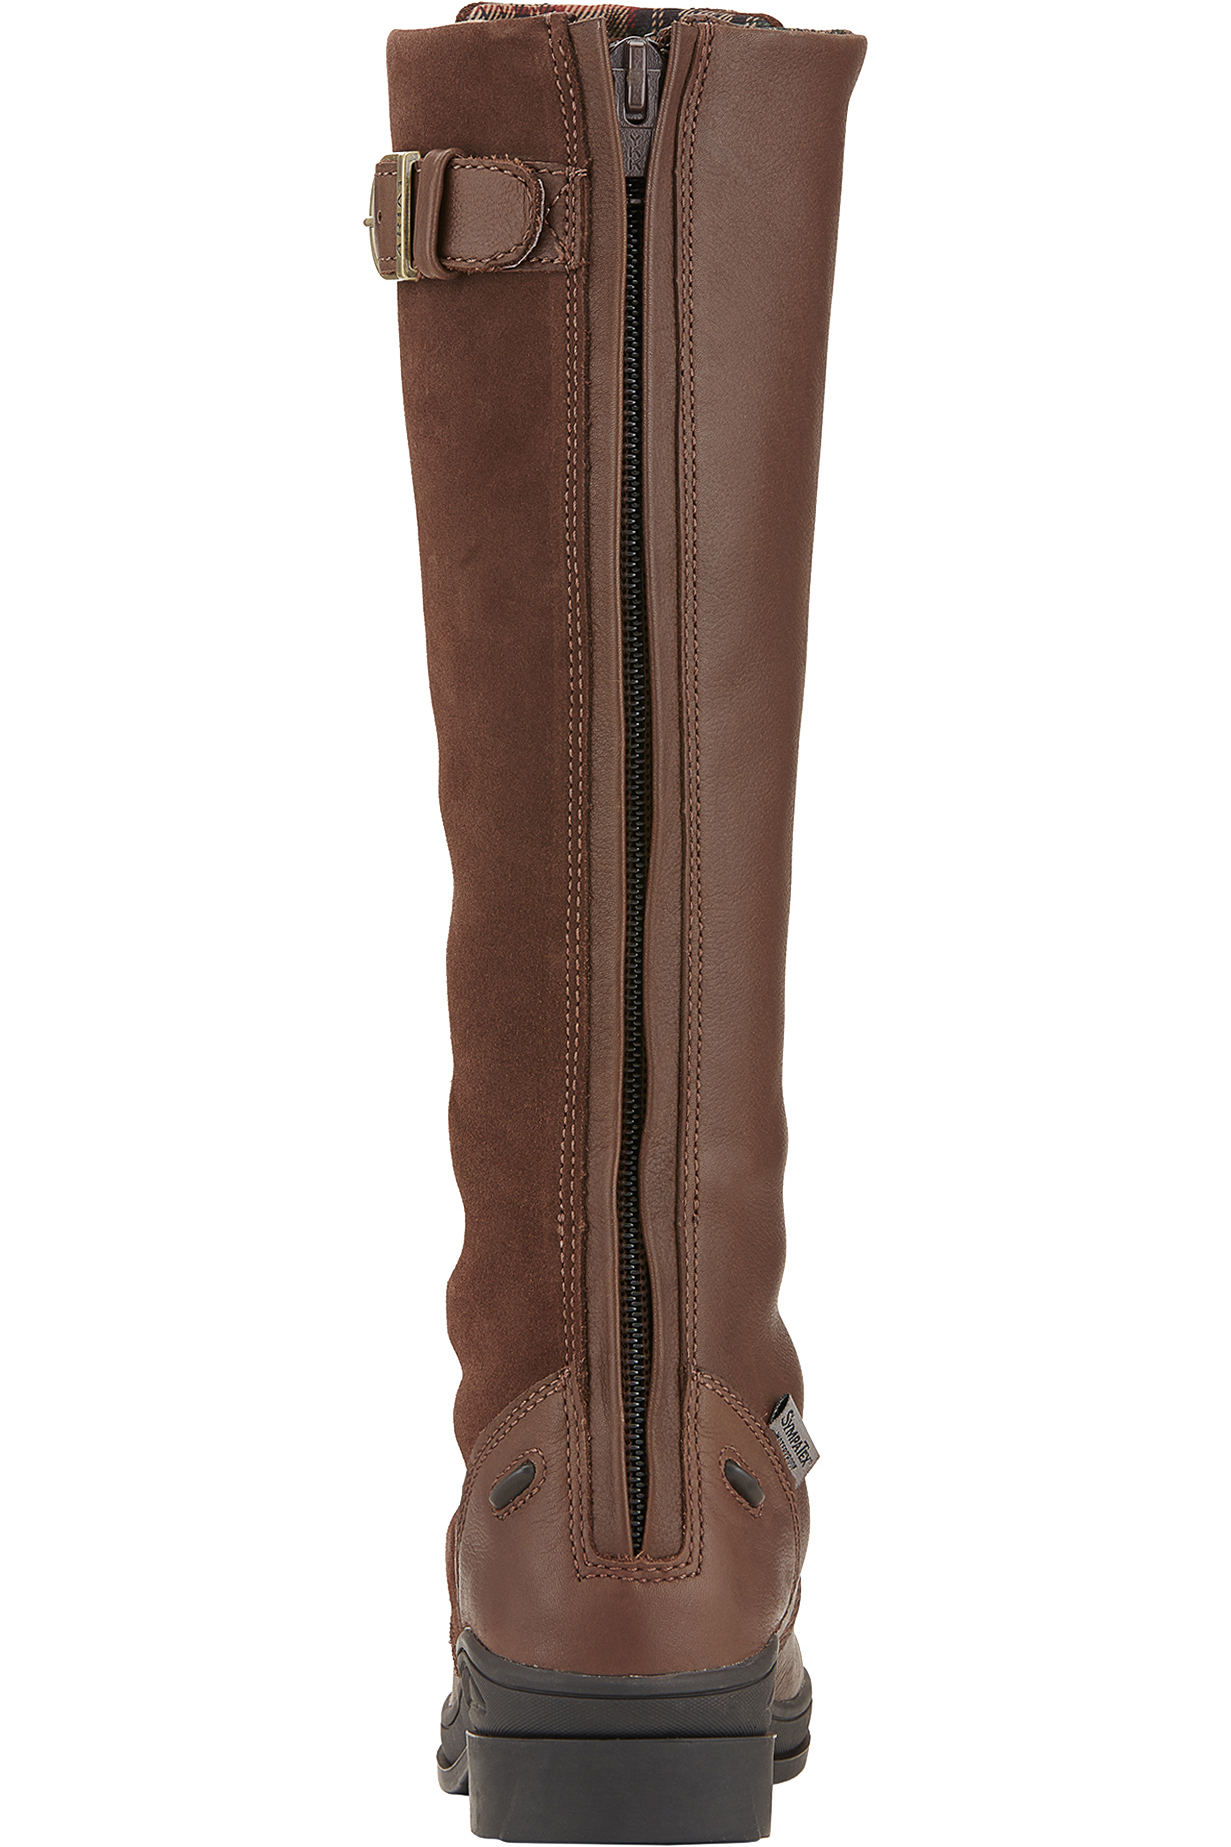 ad6e386e6c7 Ariat Womens Coniston H20 Country Boots Chocolate